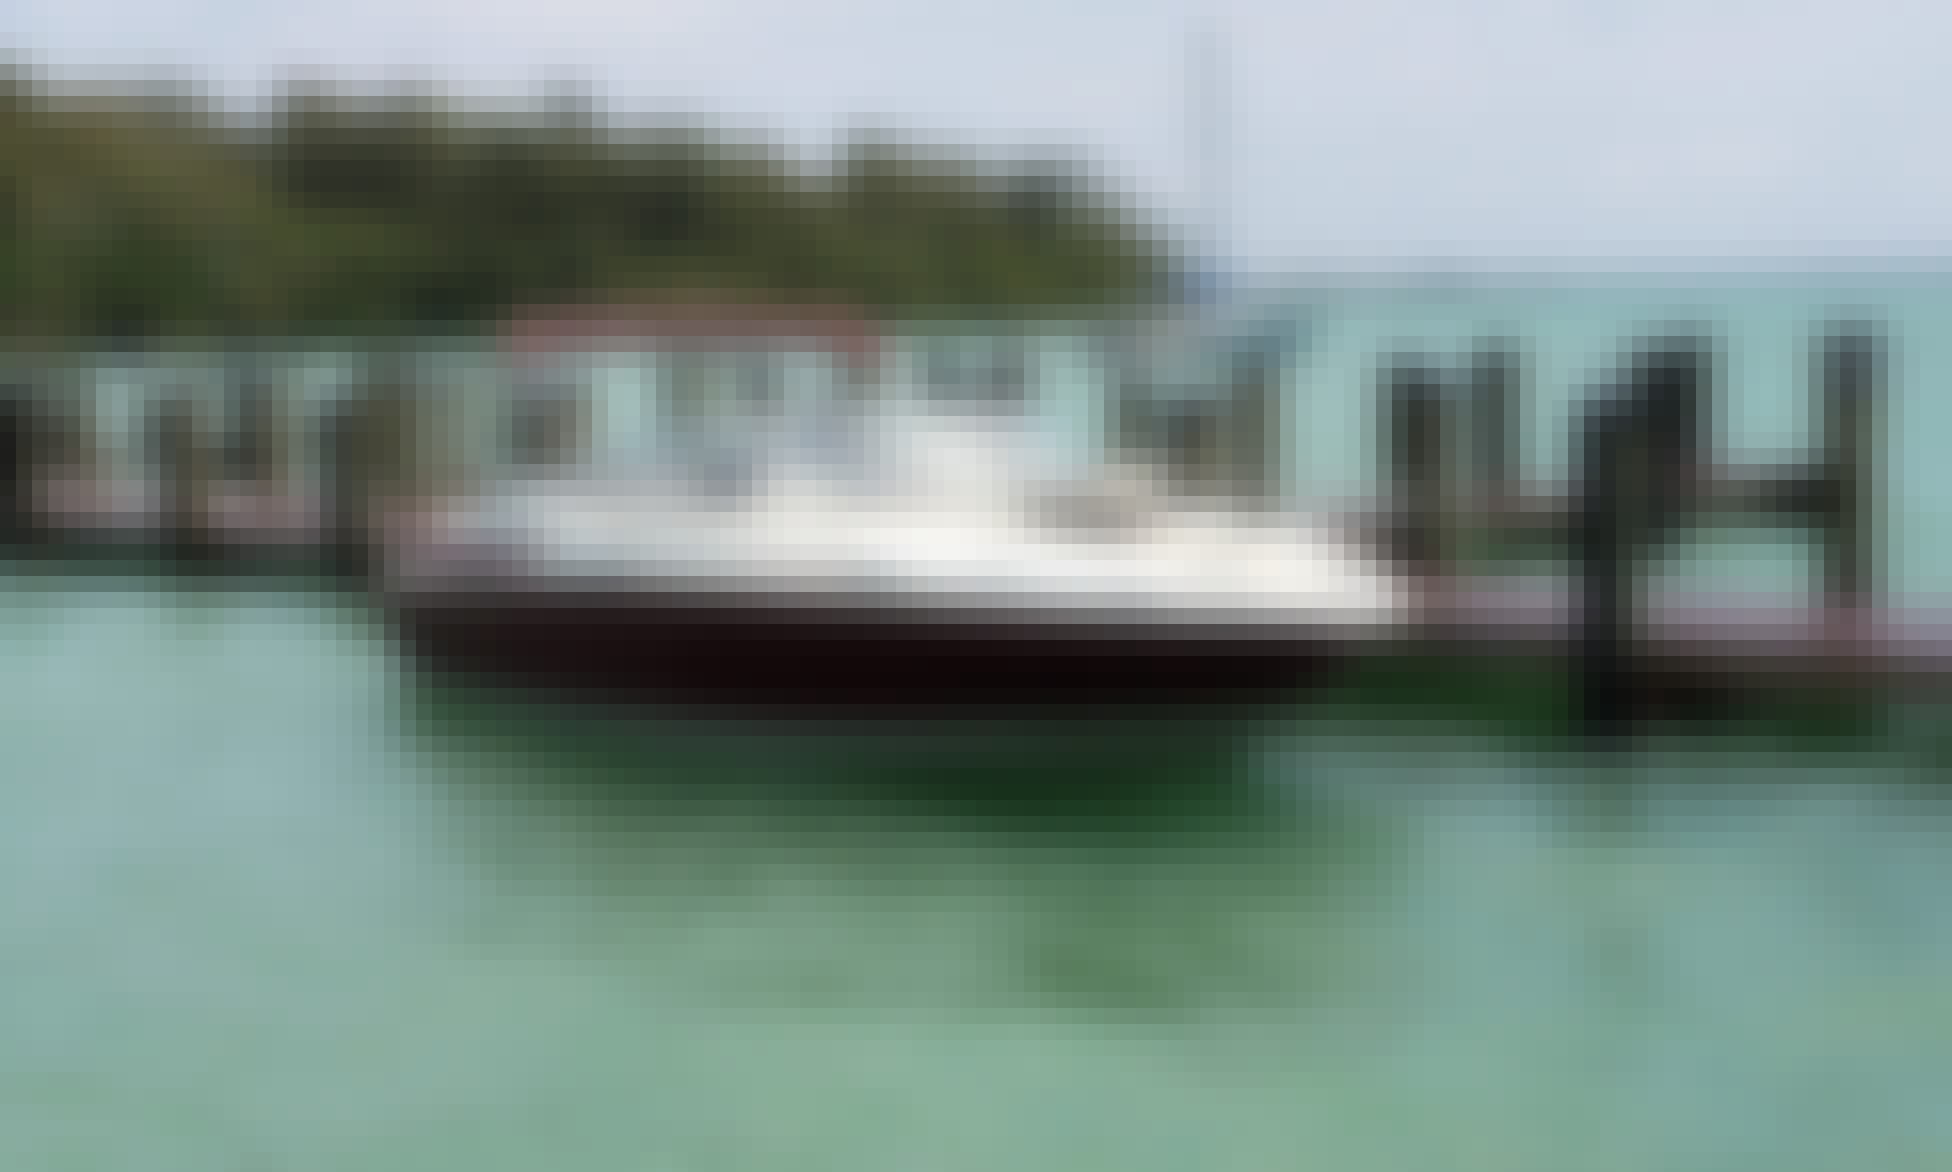 Memories for a lifetime! Rent this Deck Boat for 8 People in St. Pete!